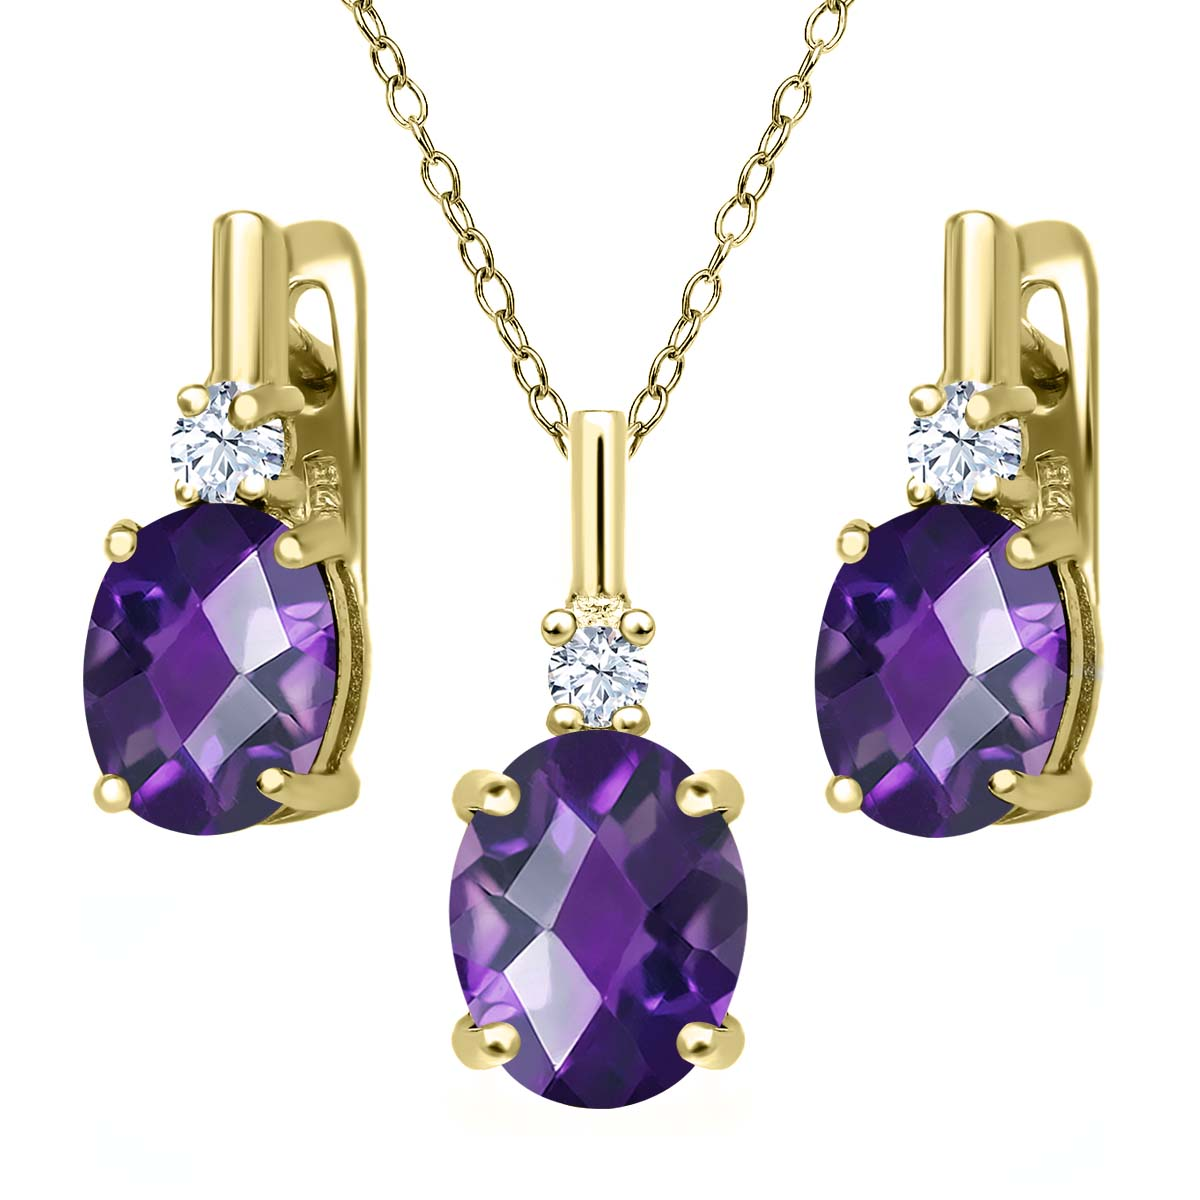 4.85 Ct Oval Checkerboard Purple Amethyst 18K Yellow Gold Plated Silver Pendant Earrings Set by